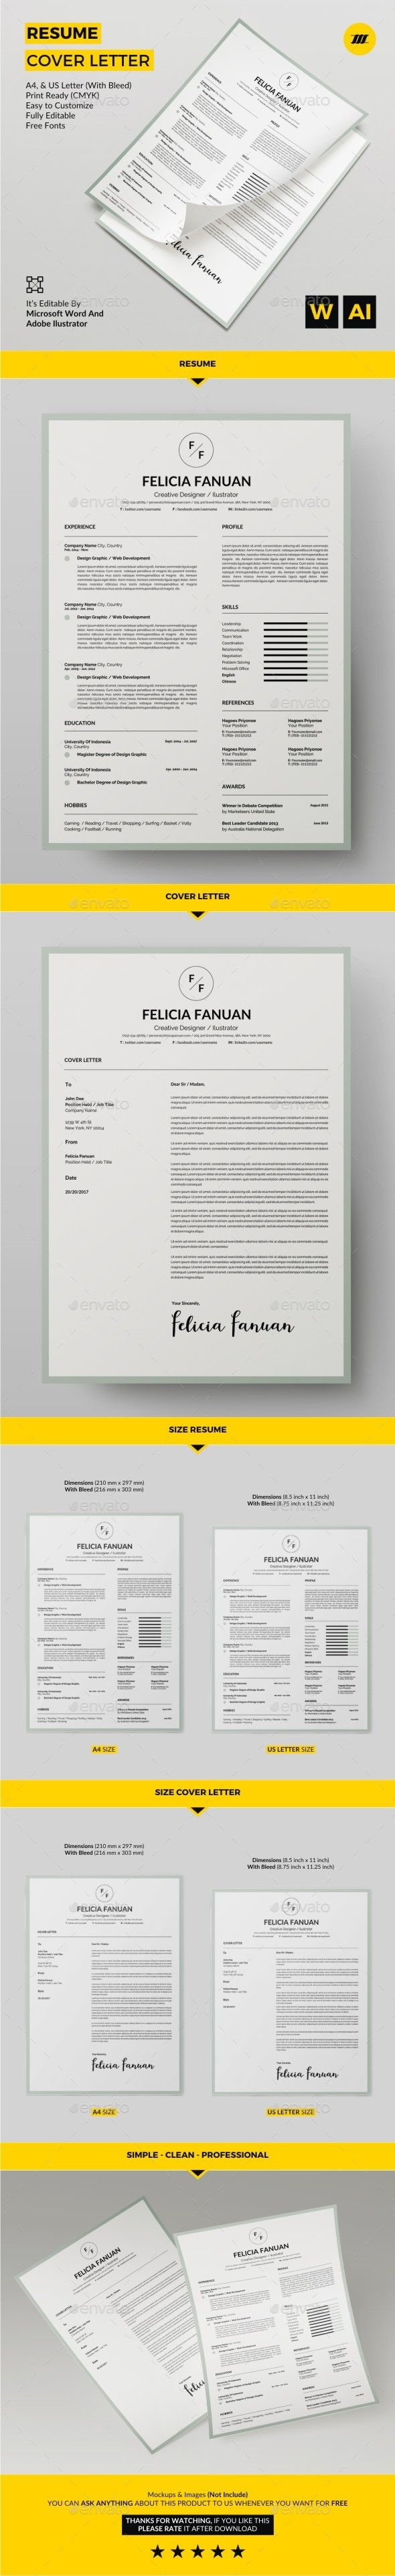 resume words on pinterest resume resume skills and job search tips